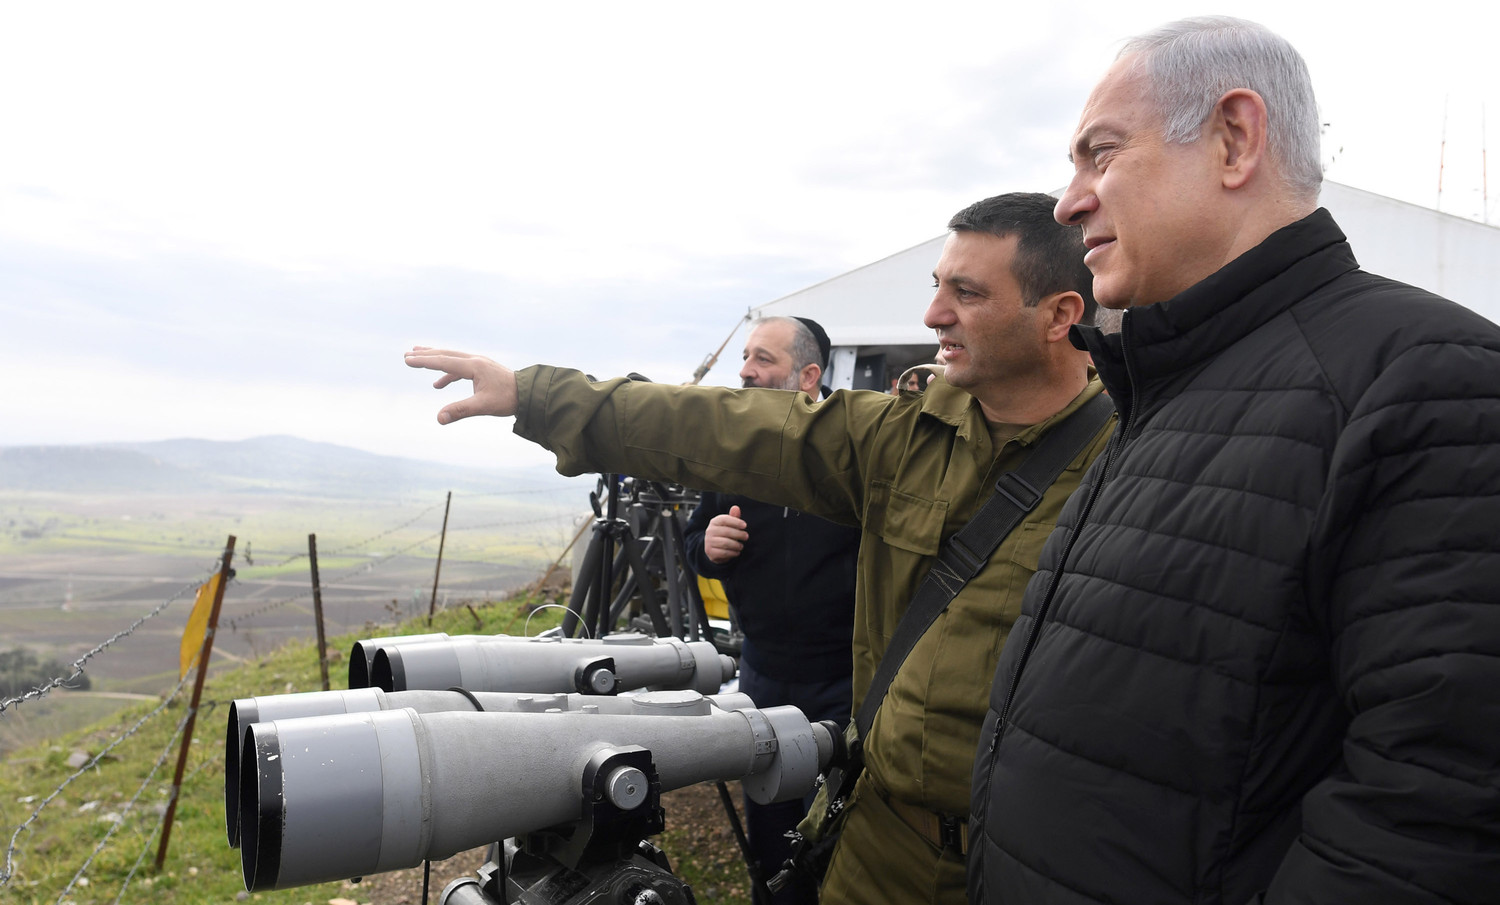 Israeli Prime Minister Benjamin Netanyahu and Security Cabinet members get a tour with the North Front Command in the Golan Heights, on Feb. 6, 2018.